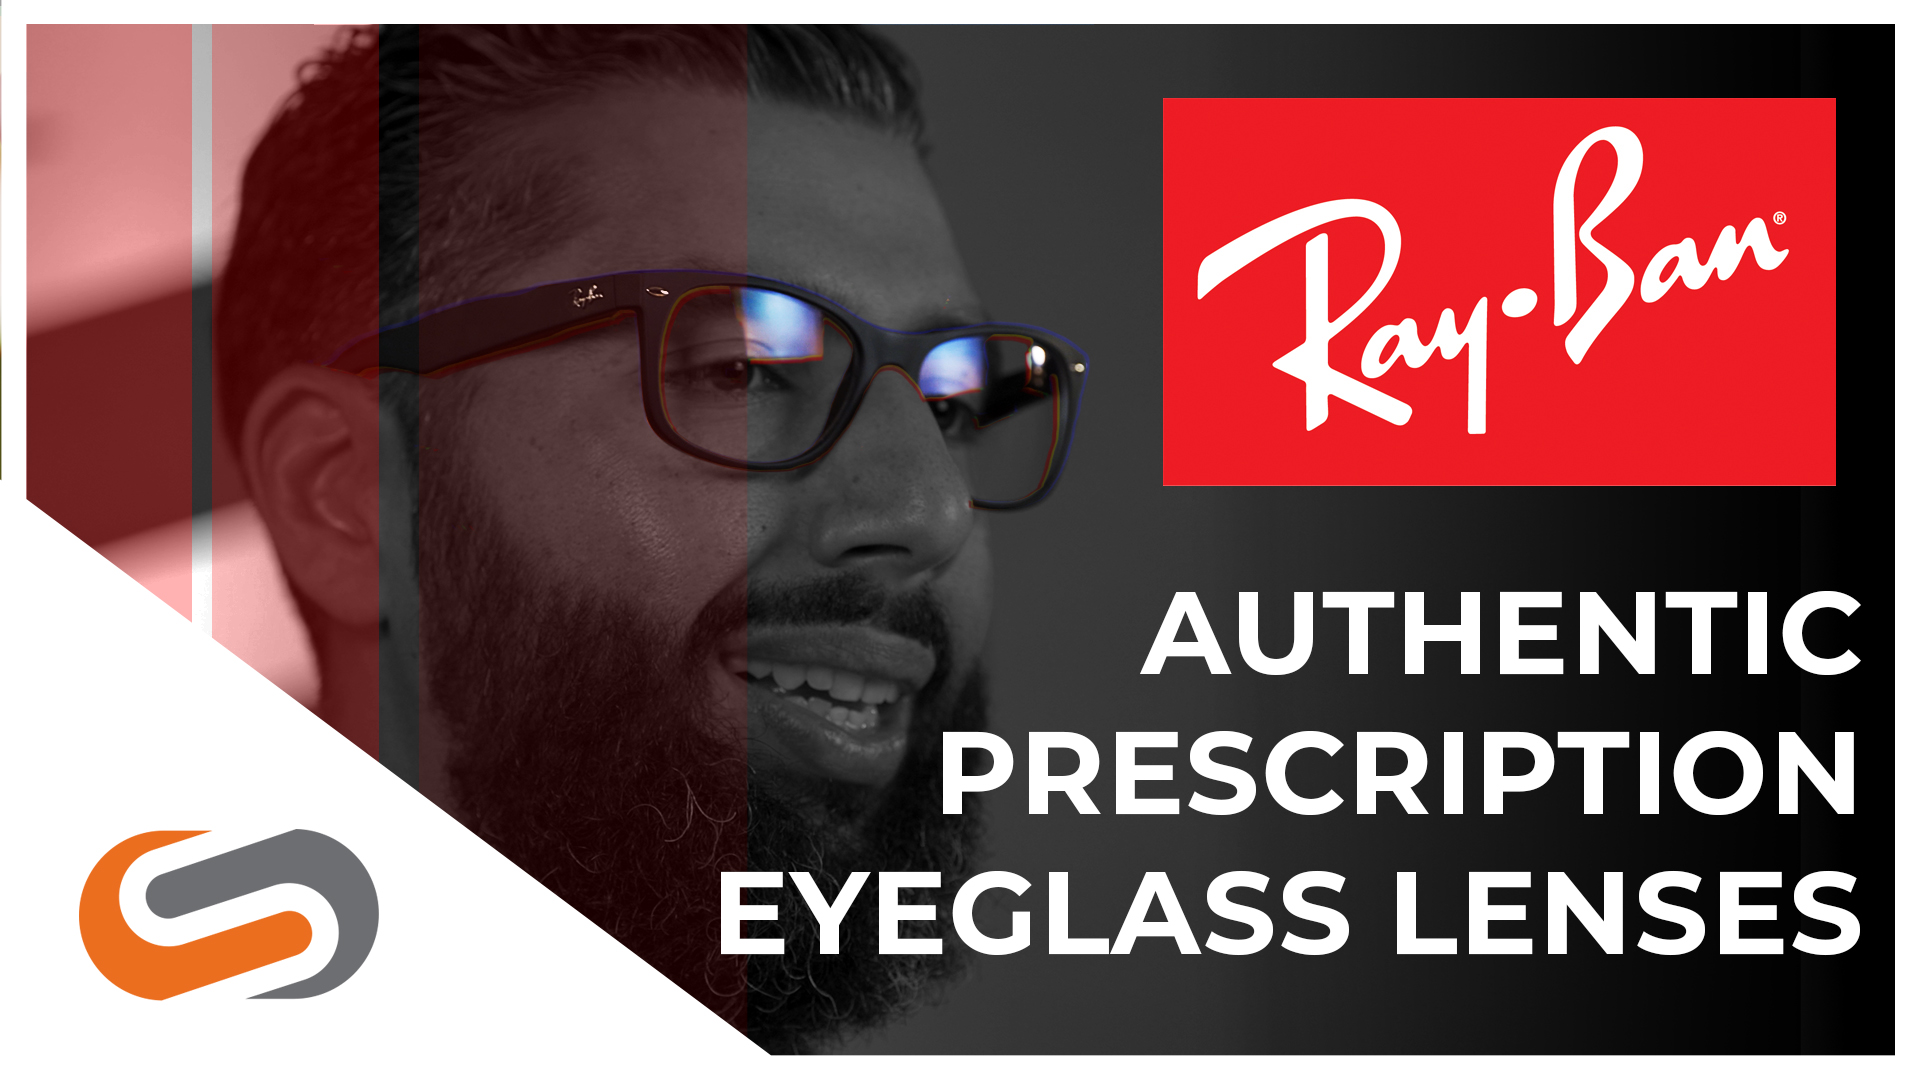 Can You get Ray-Ban Authentic Lenses in Your Eyeglasses?